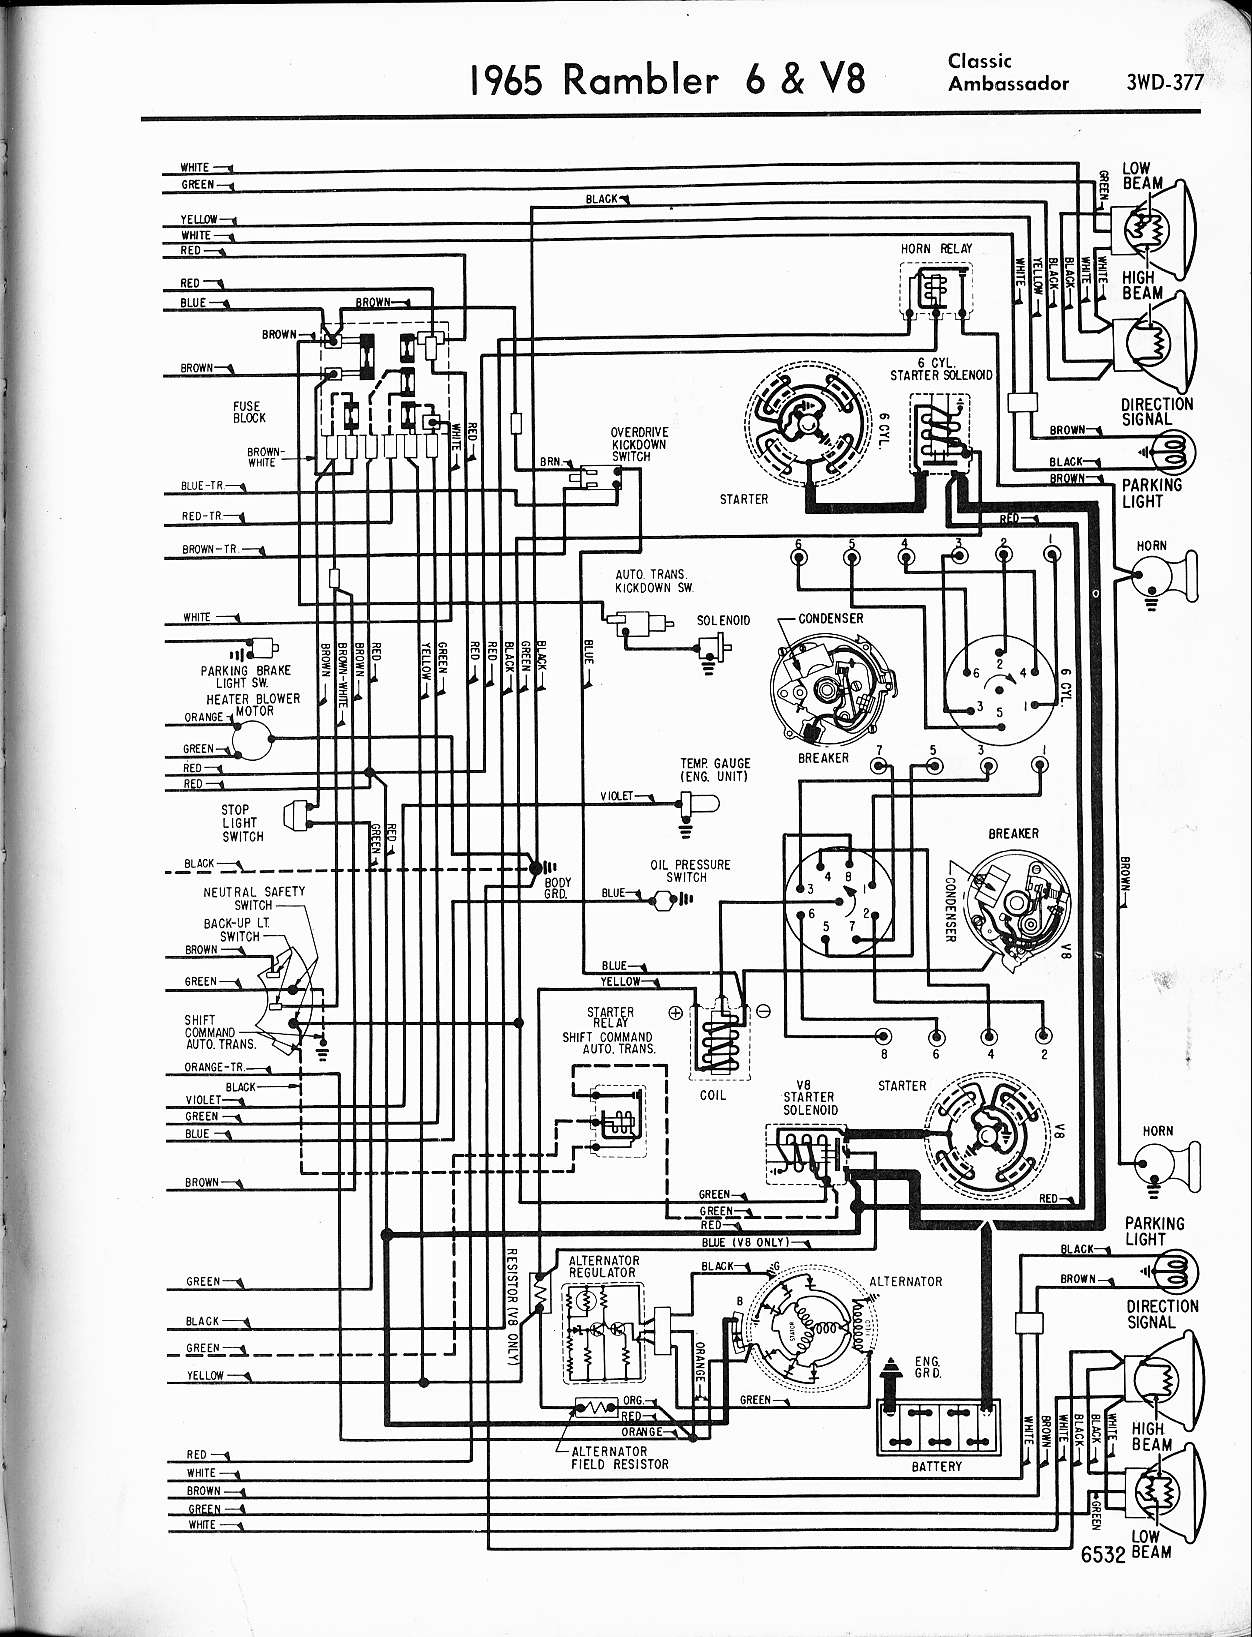 1968 Javelin Wiring Diagram Schematics Nova Amx Library 1965 Rambler Marlin Opinions About